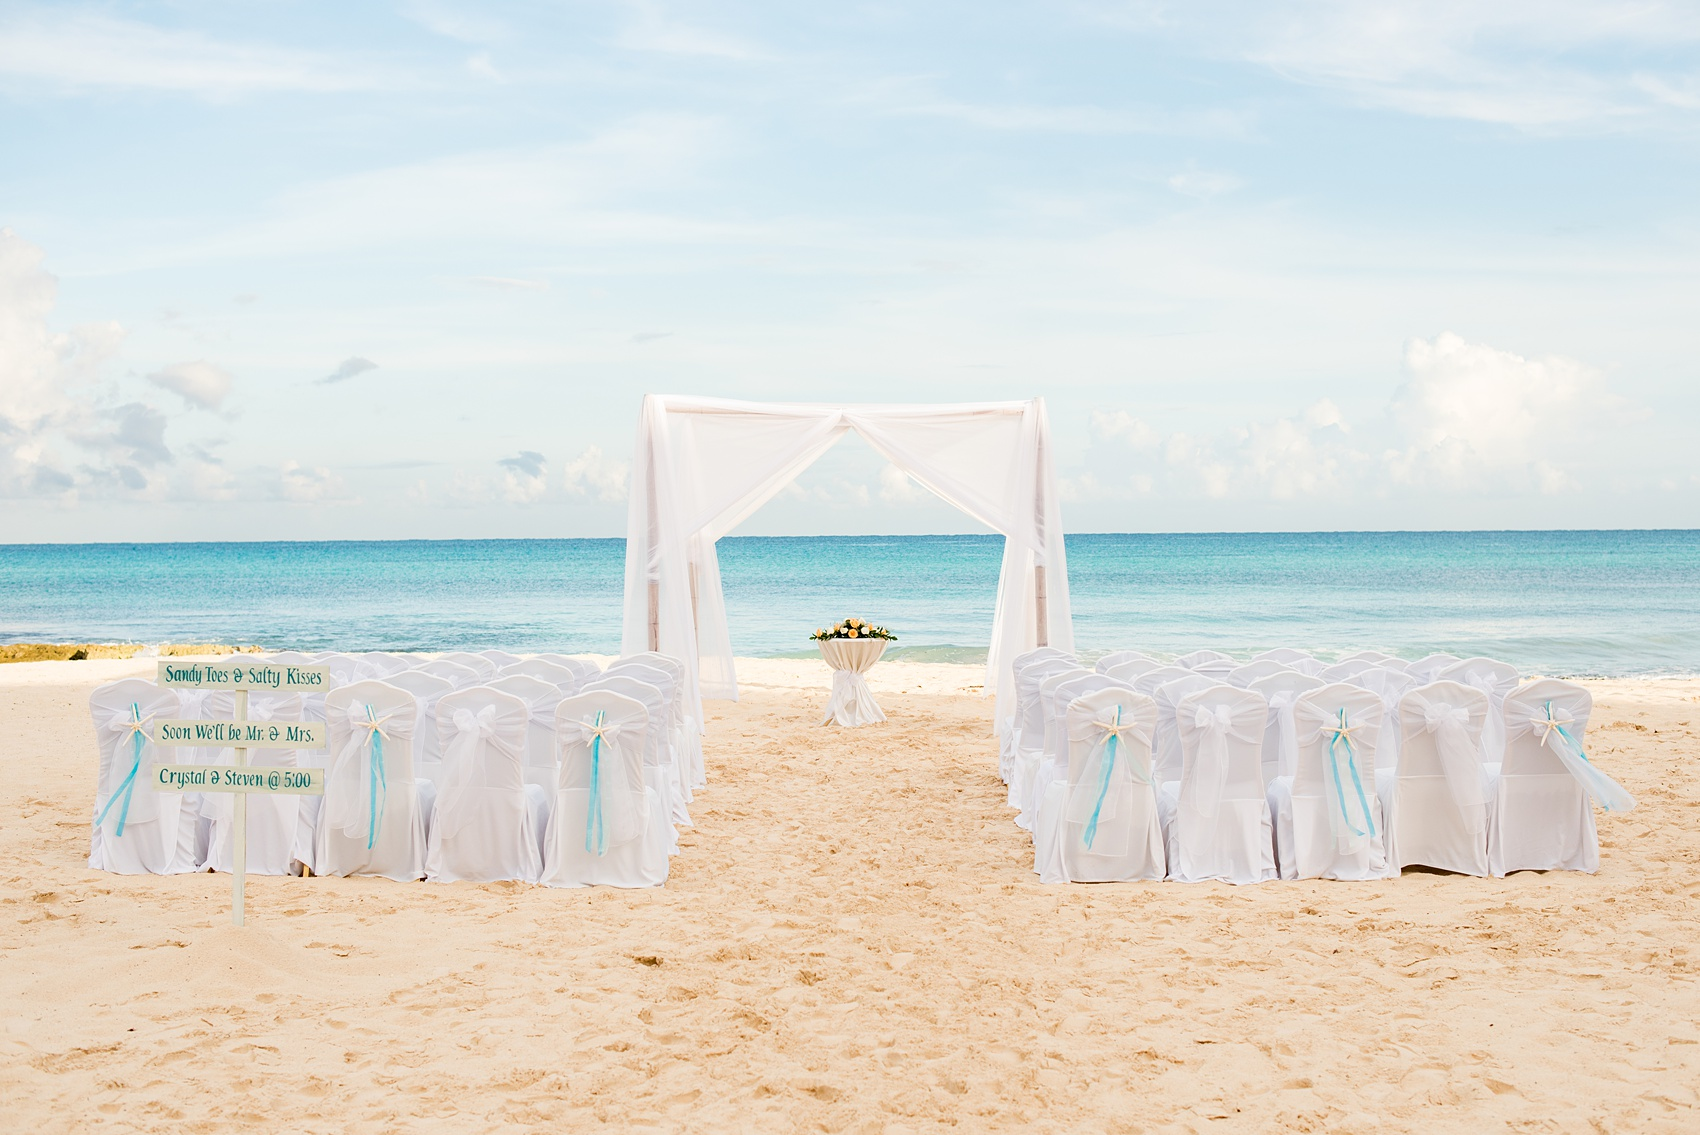 Mikkel Paige Photography photos from a wedding at Grand Paraiso, Mexico, Playa del Carmen Iberostar resort. Picture of the white chairs and fabric arbor for the beach ceremony.